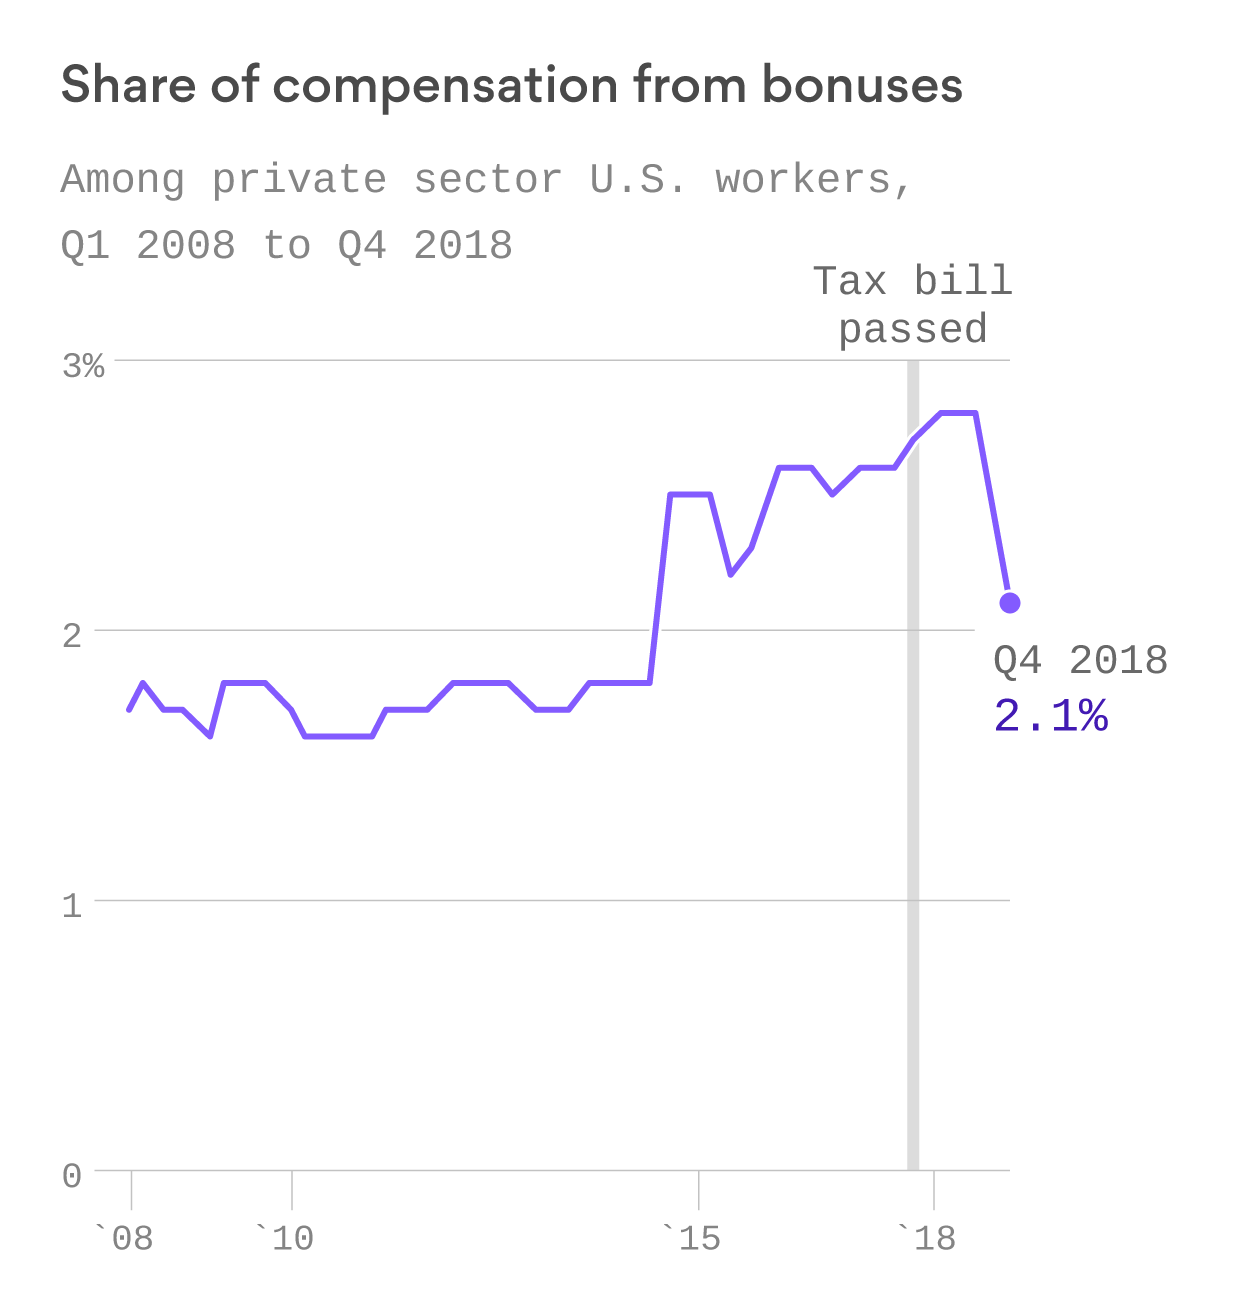 Americans have gotten $0.01 more in bonuses since Trump's tax cuts